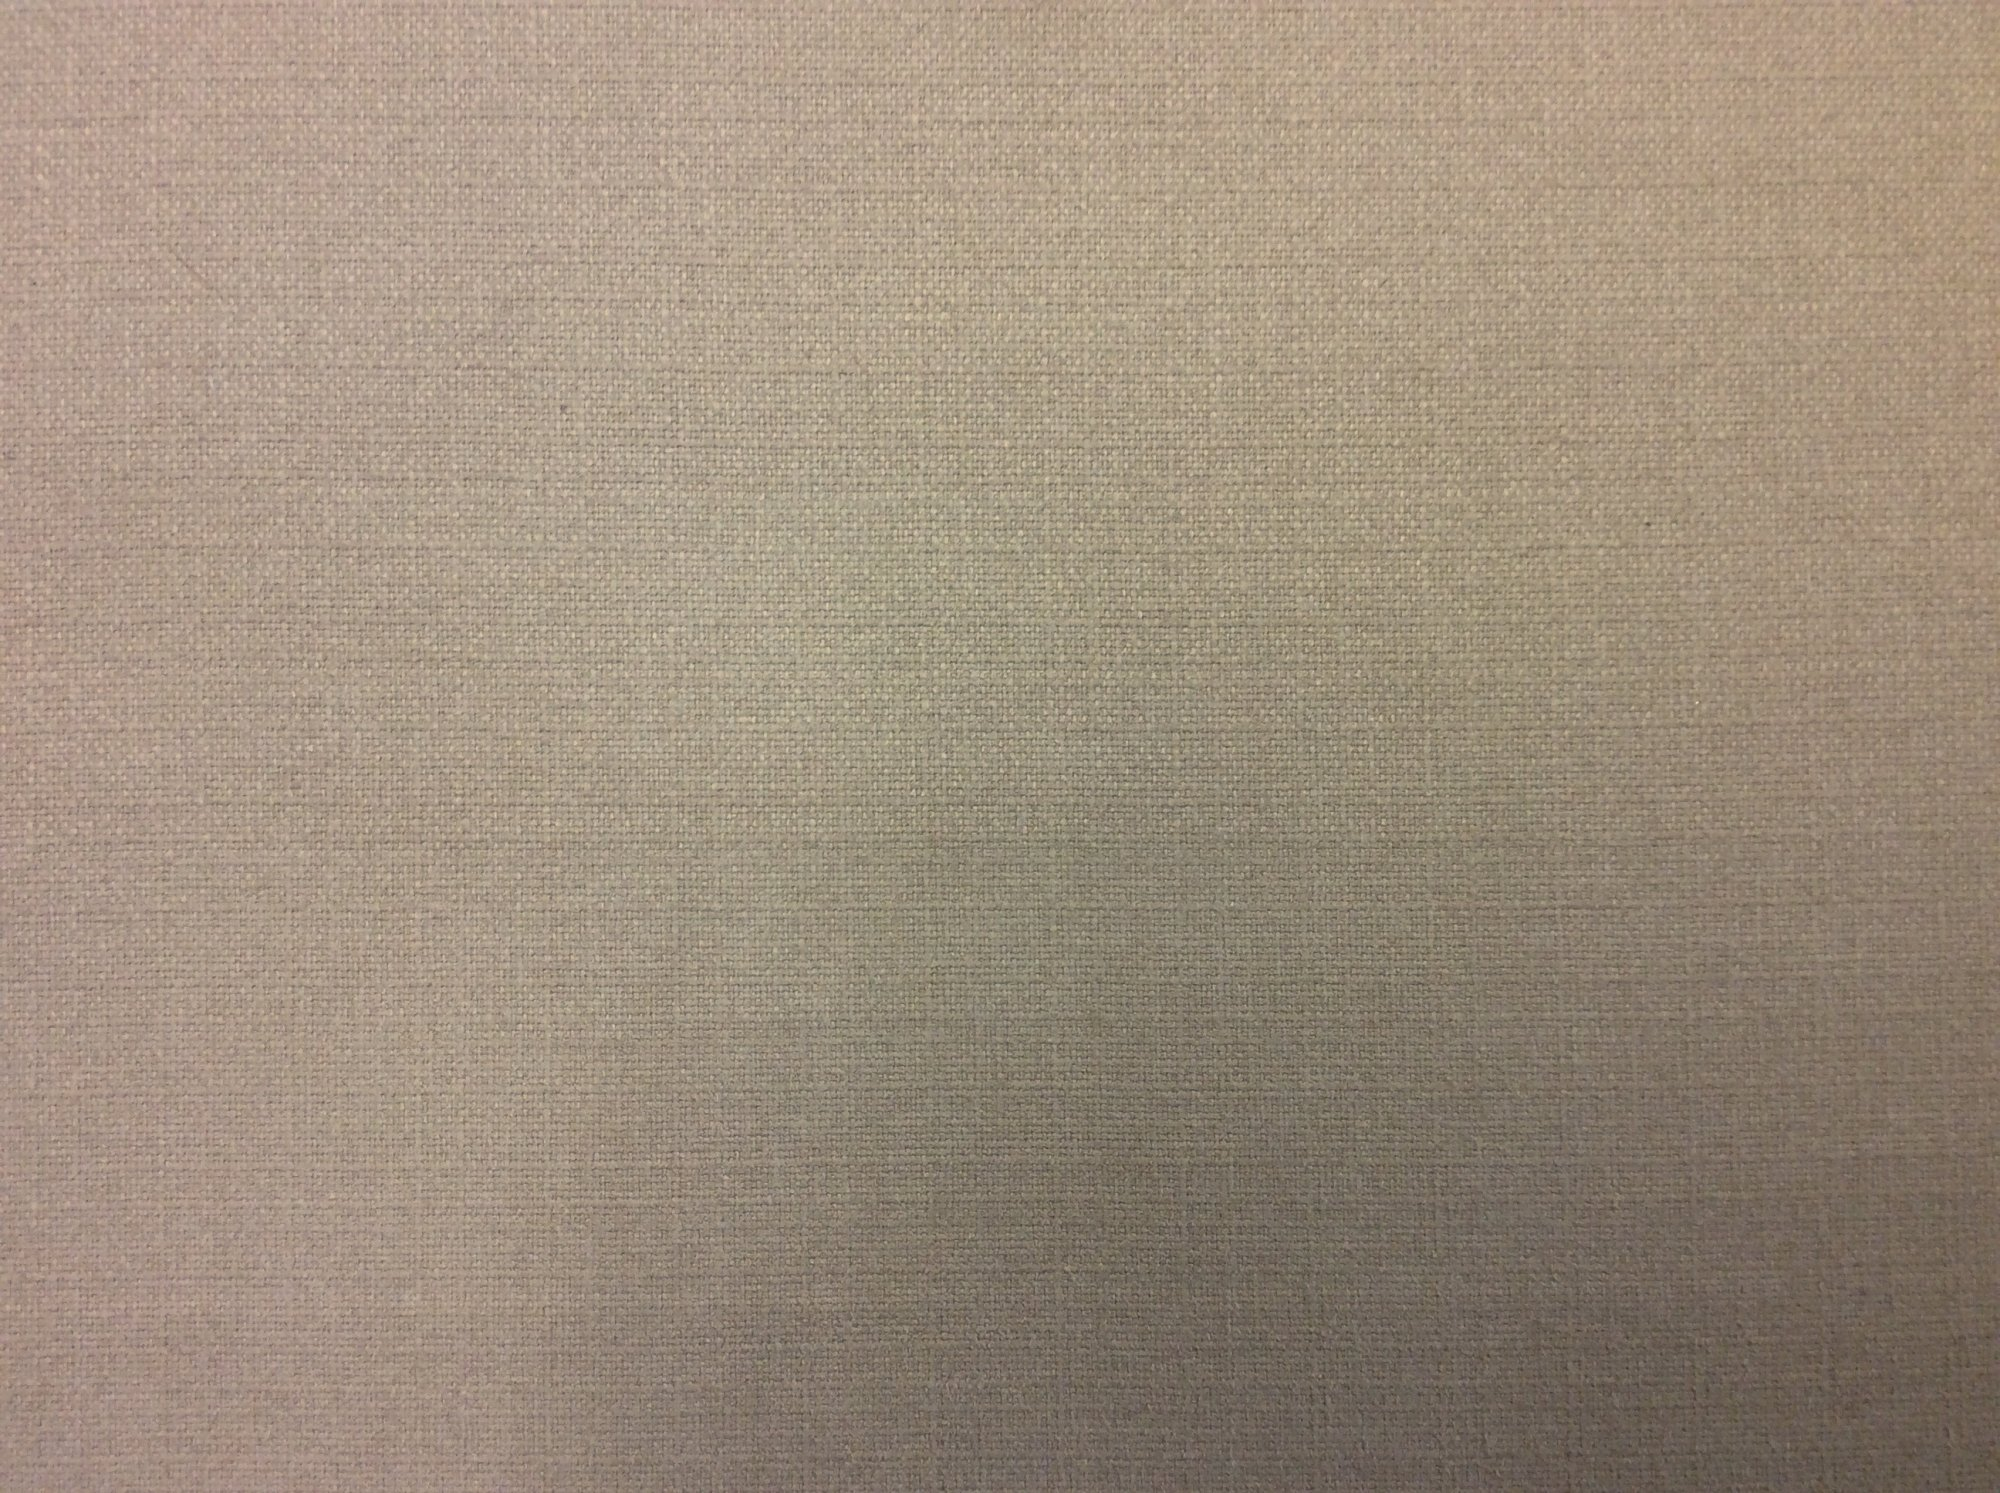 Heavy Duty Upholstery Fabric Tan Linen Look Woven Home Dec Fabric CVRY197